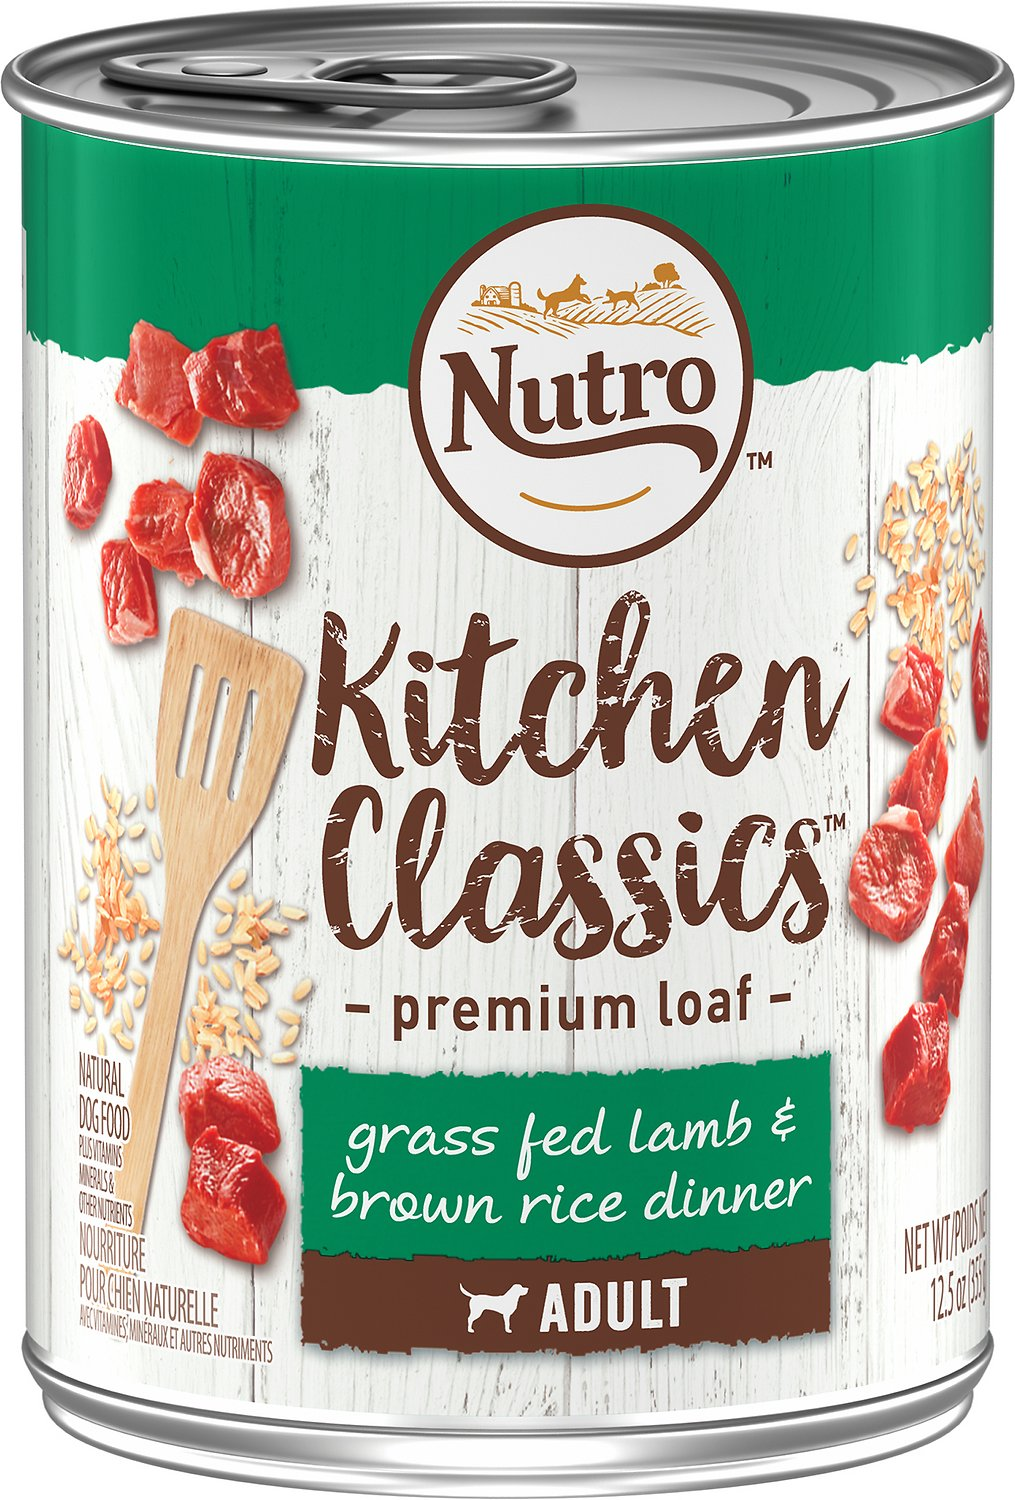 Nutro Adult Kitchen Classics Grass Fed Lamb & Brown Rice Canned Dog Food, 12.5-oz